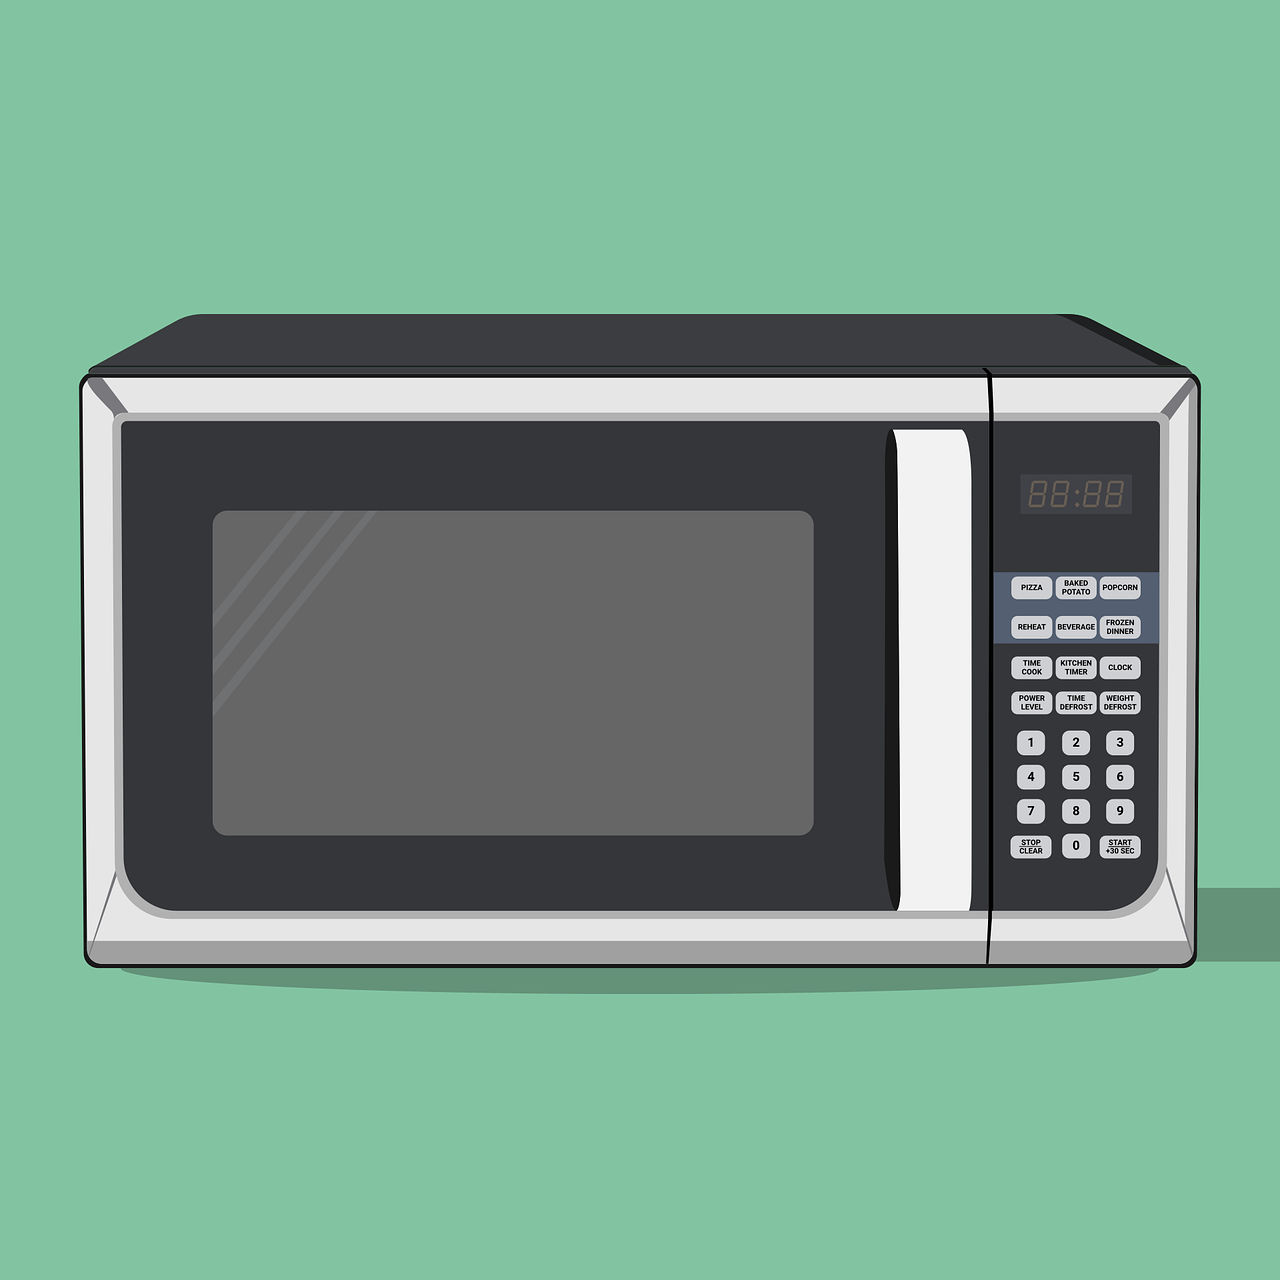 what-can-you-use-to-cover-your-microwave-1